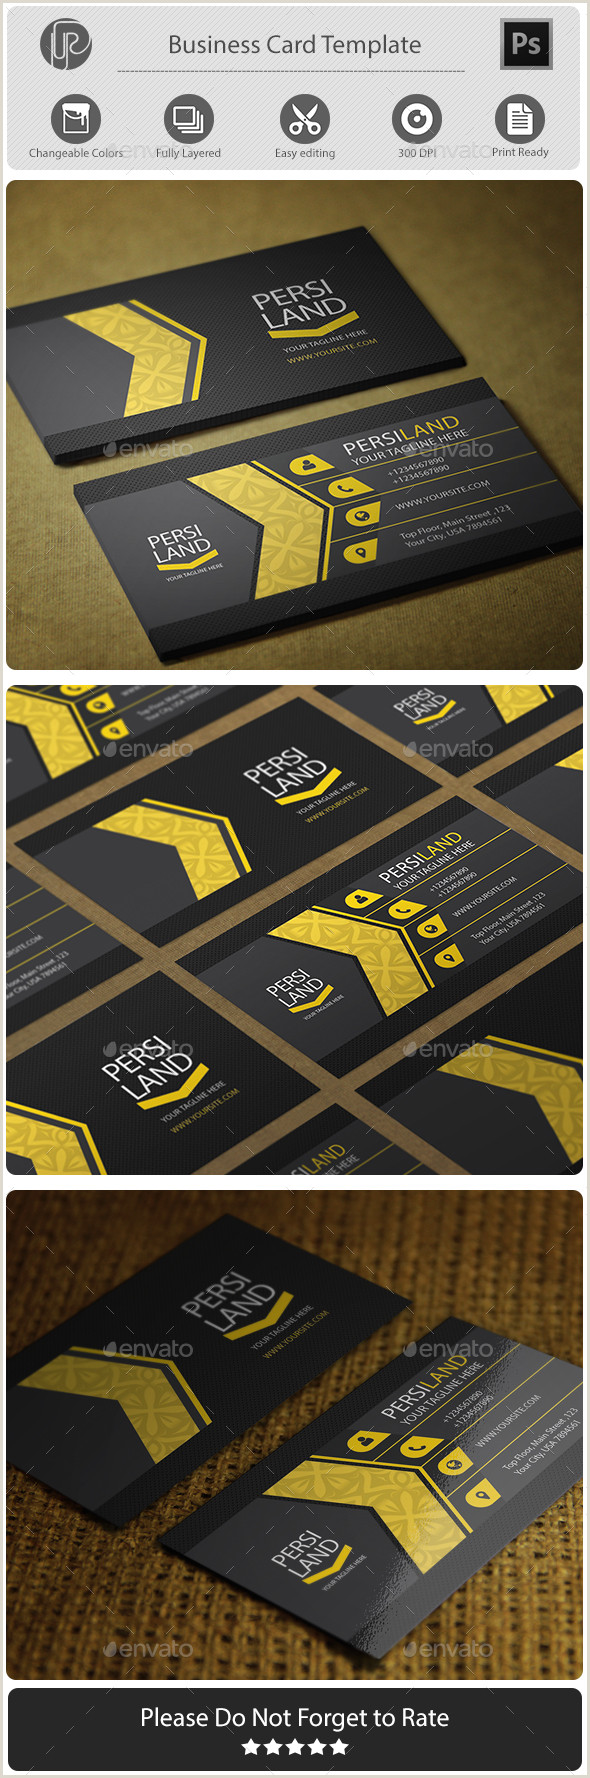 Professional Personal Business Cards Personal Business Card Templates & Designs From Graphicriver